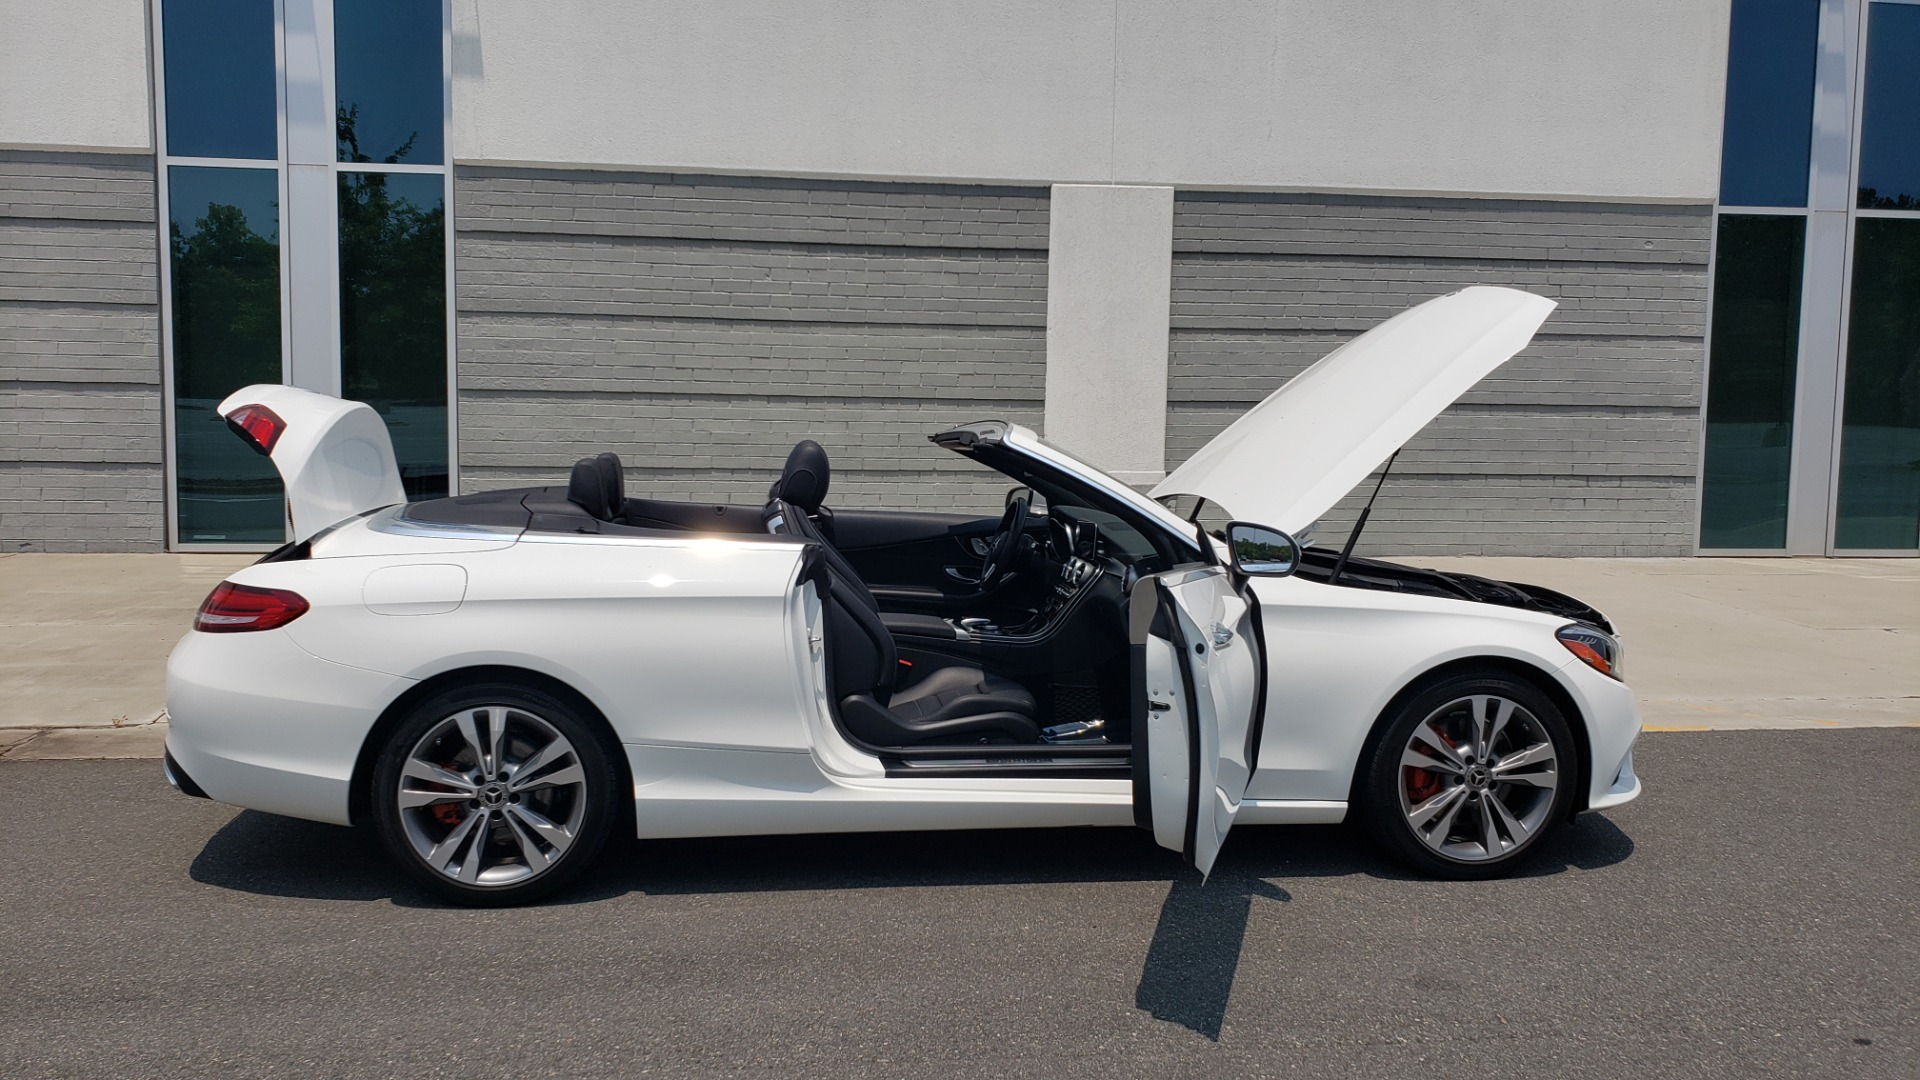 Used 2019 Mercedes-Benz C-CLASS C 300 CABRIOLET 2.0L / AUTO / NAV / HD RADIO / REARVIEW for sale $46,995 at Formula Imports in Charlotte NC 28227 19